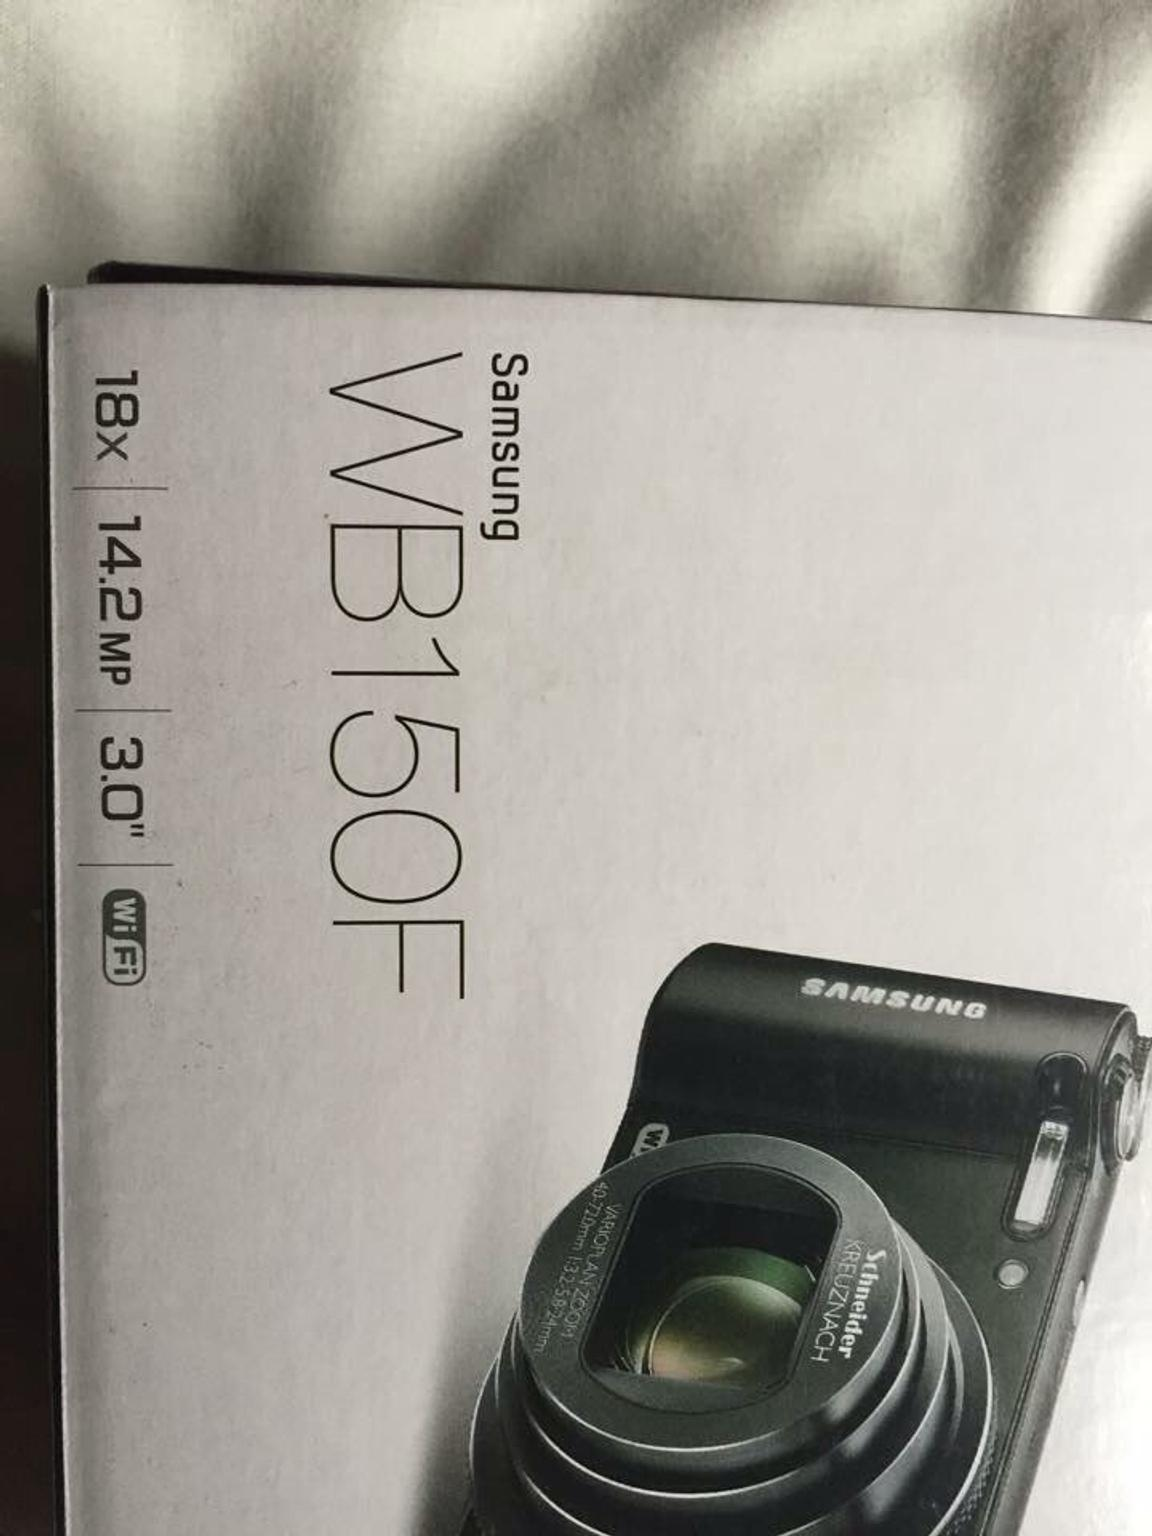 Samsung WB150F WiFi Camera + 4GB memory card